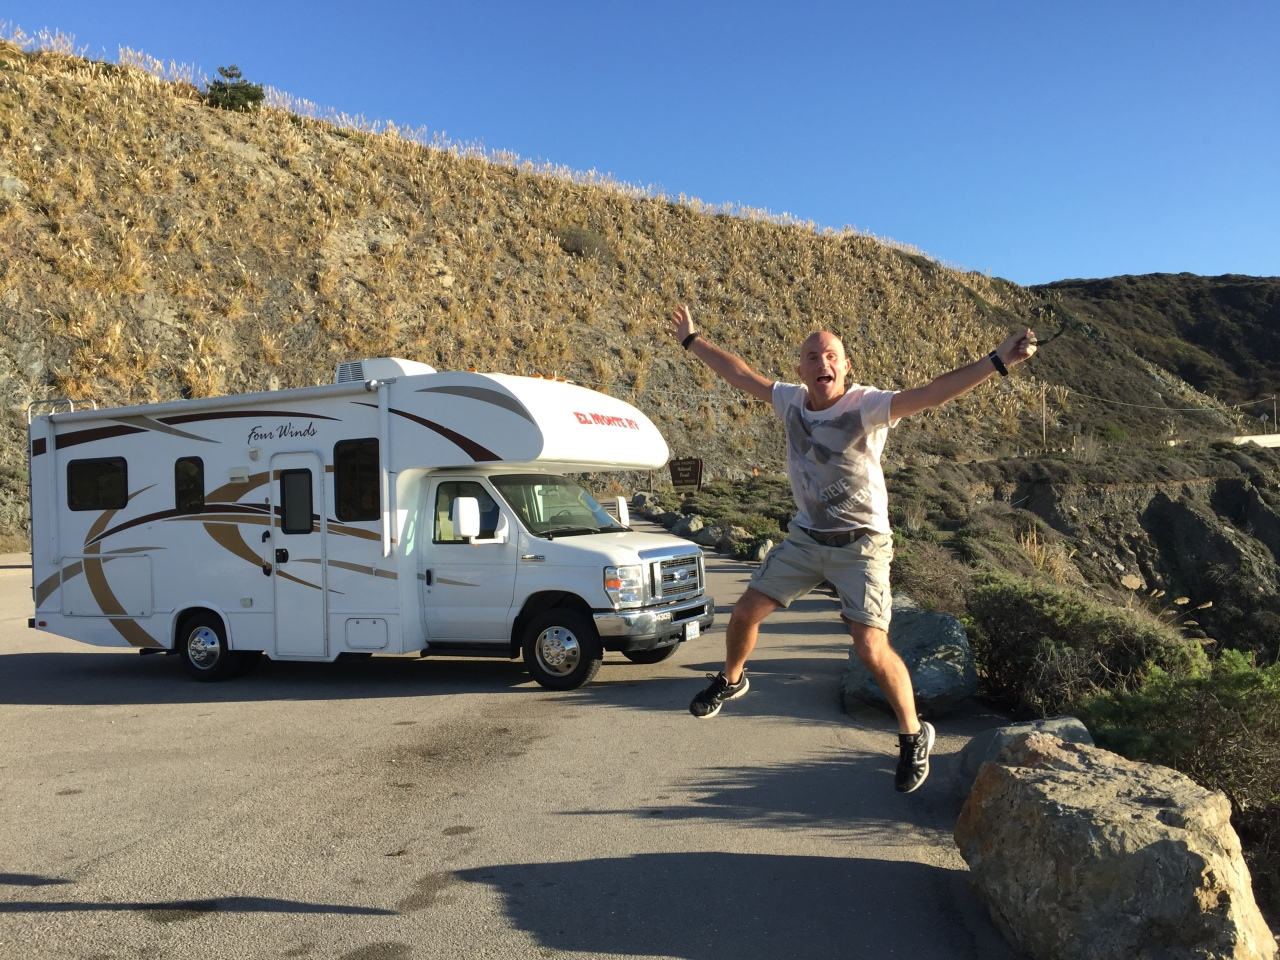 It's a driving good time along the California Highway1